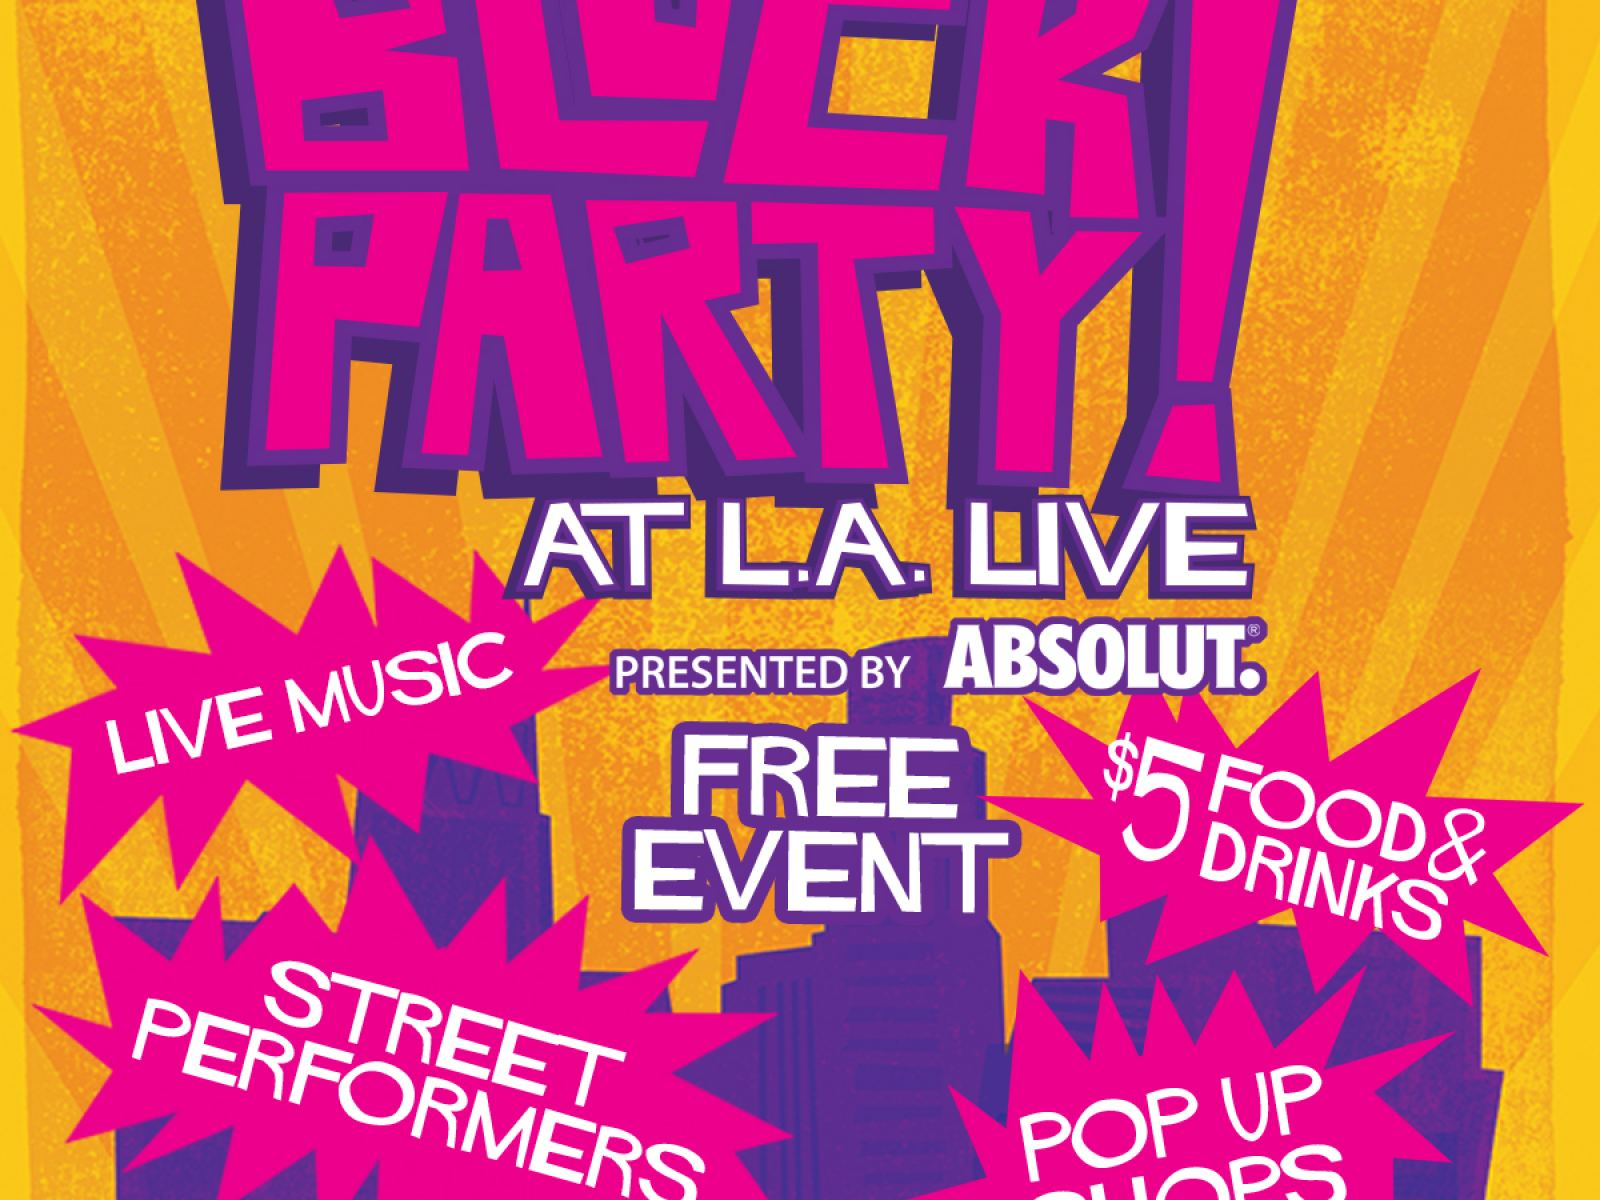 June 28 Friday Night Block Party at L.A. LIVE Presented by Absolut